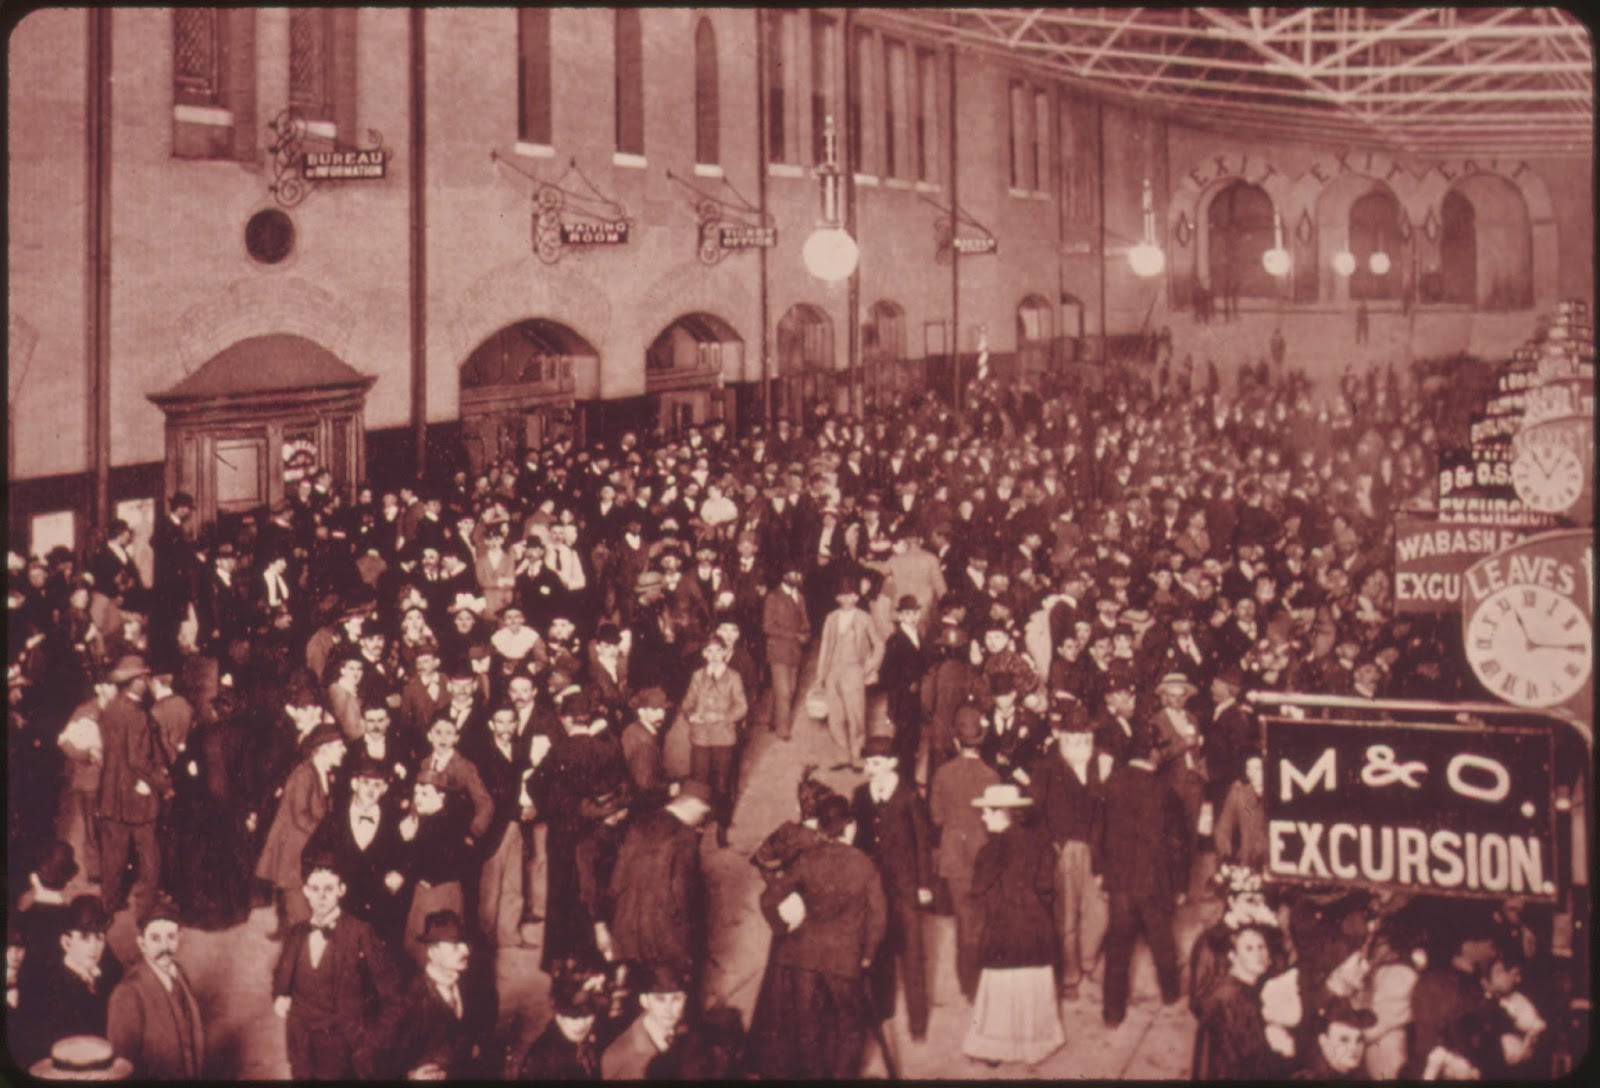 The Midway of Union Station in its early heyday